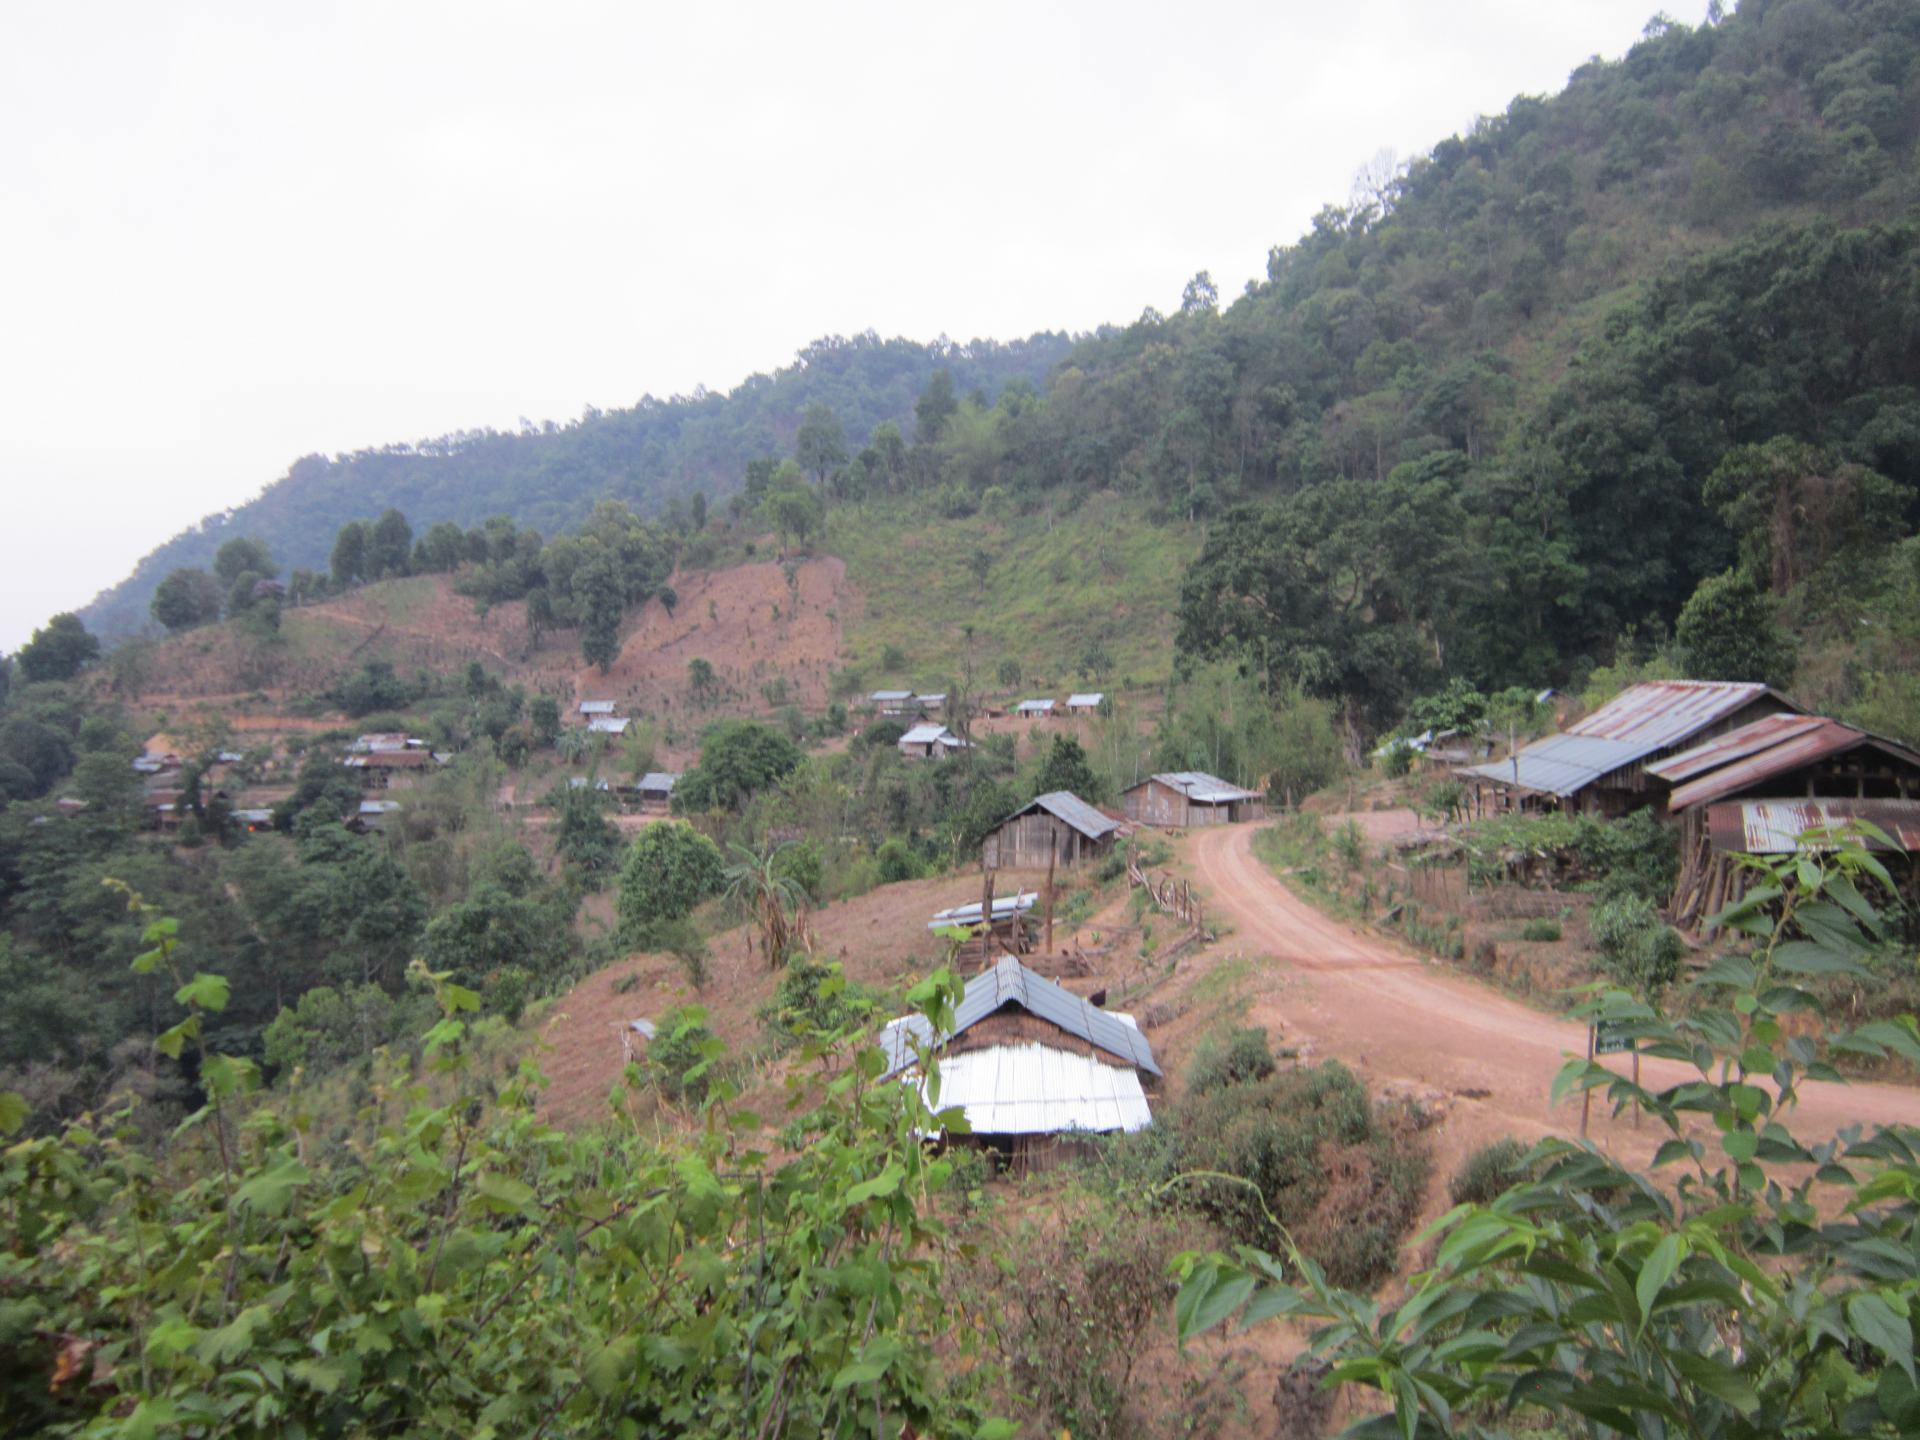 Several huts dotted around a mountain path, with trees around the sides